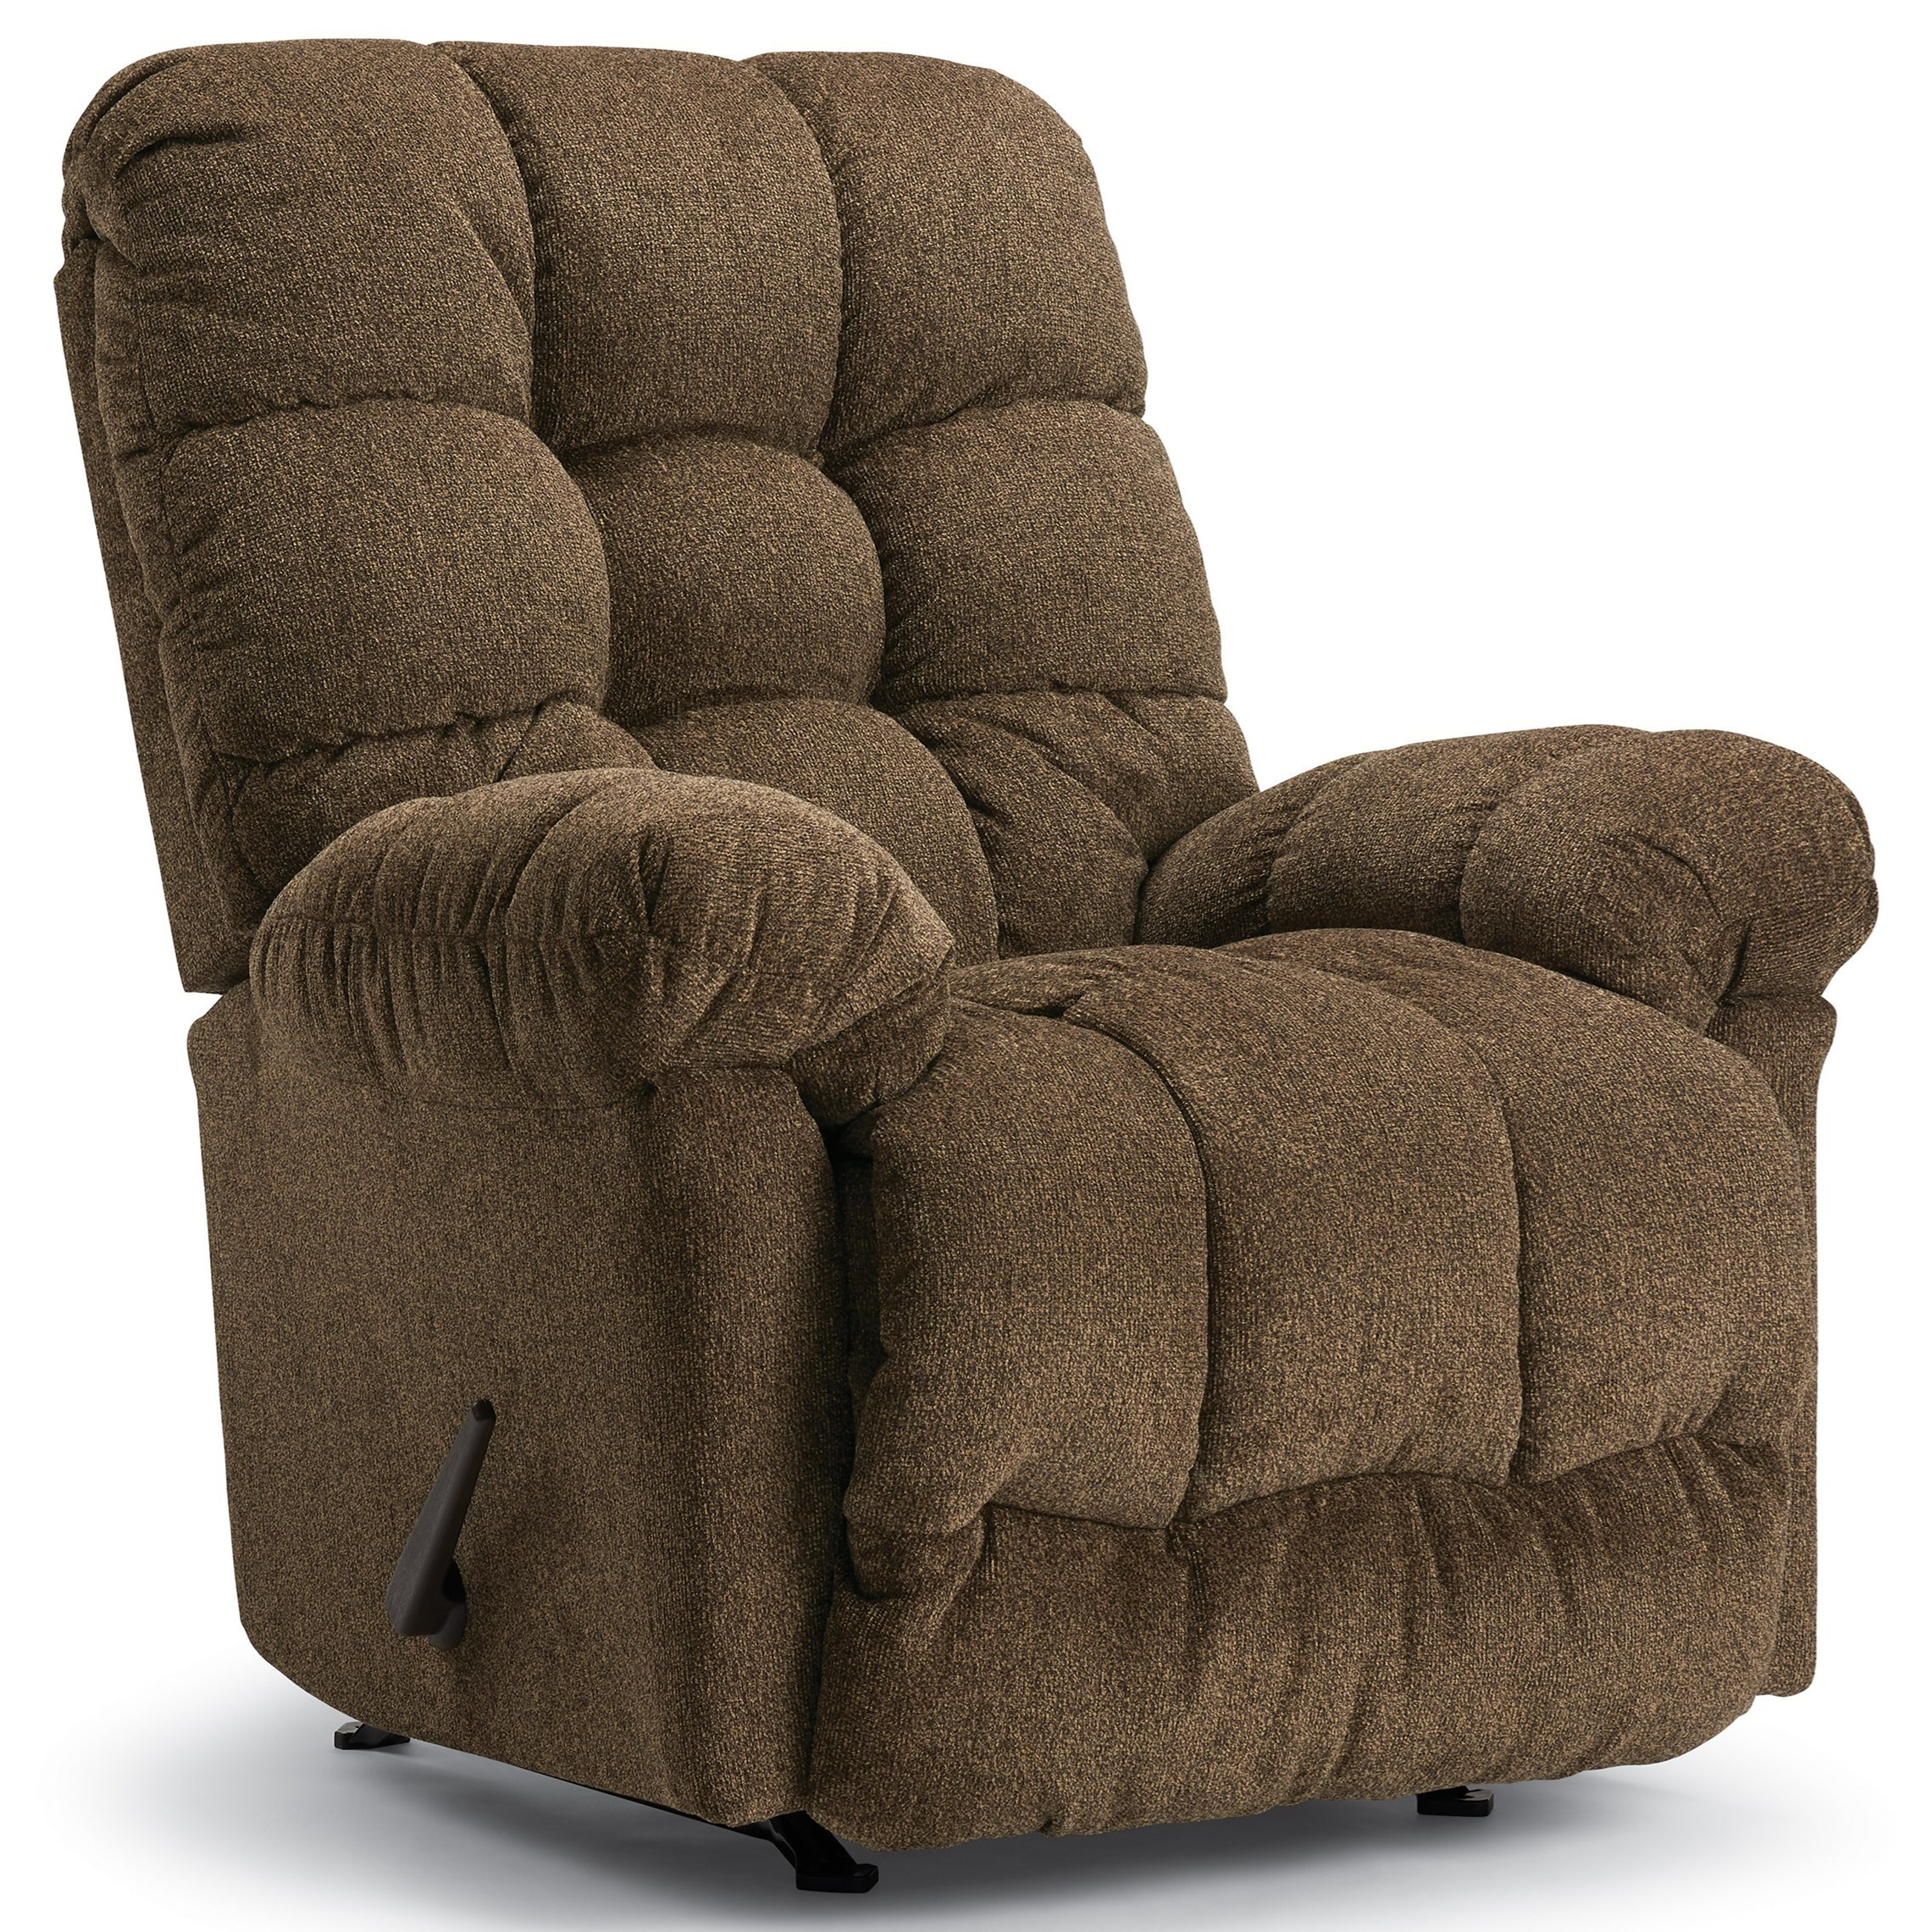 Medium Recliners Brosmer Swivel Glider Recliner by Best Home Furnishings at Baer's Furniture